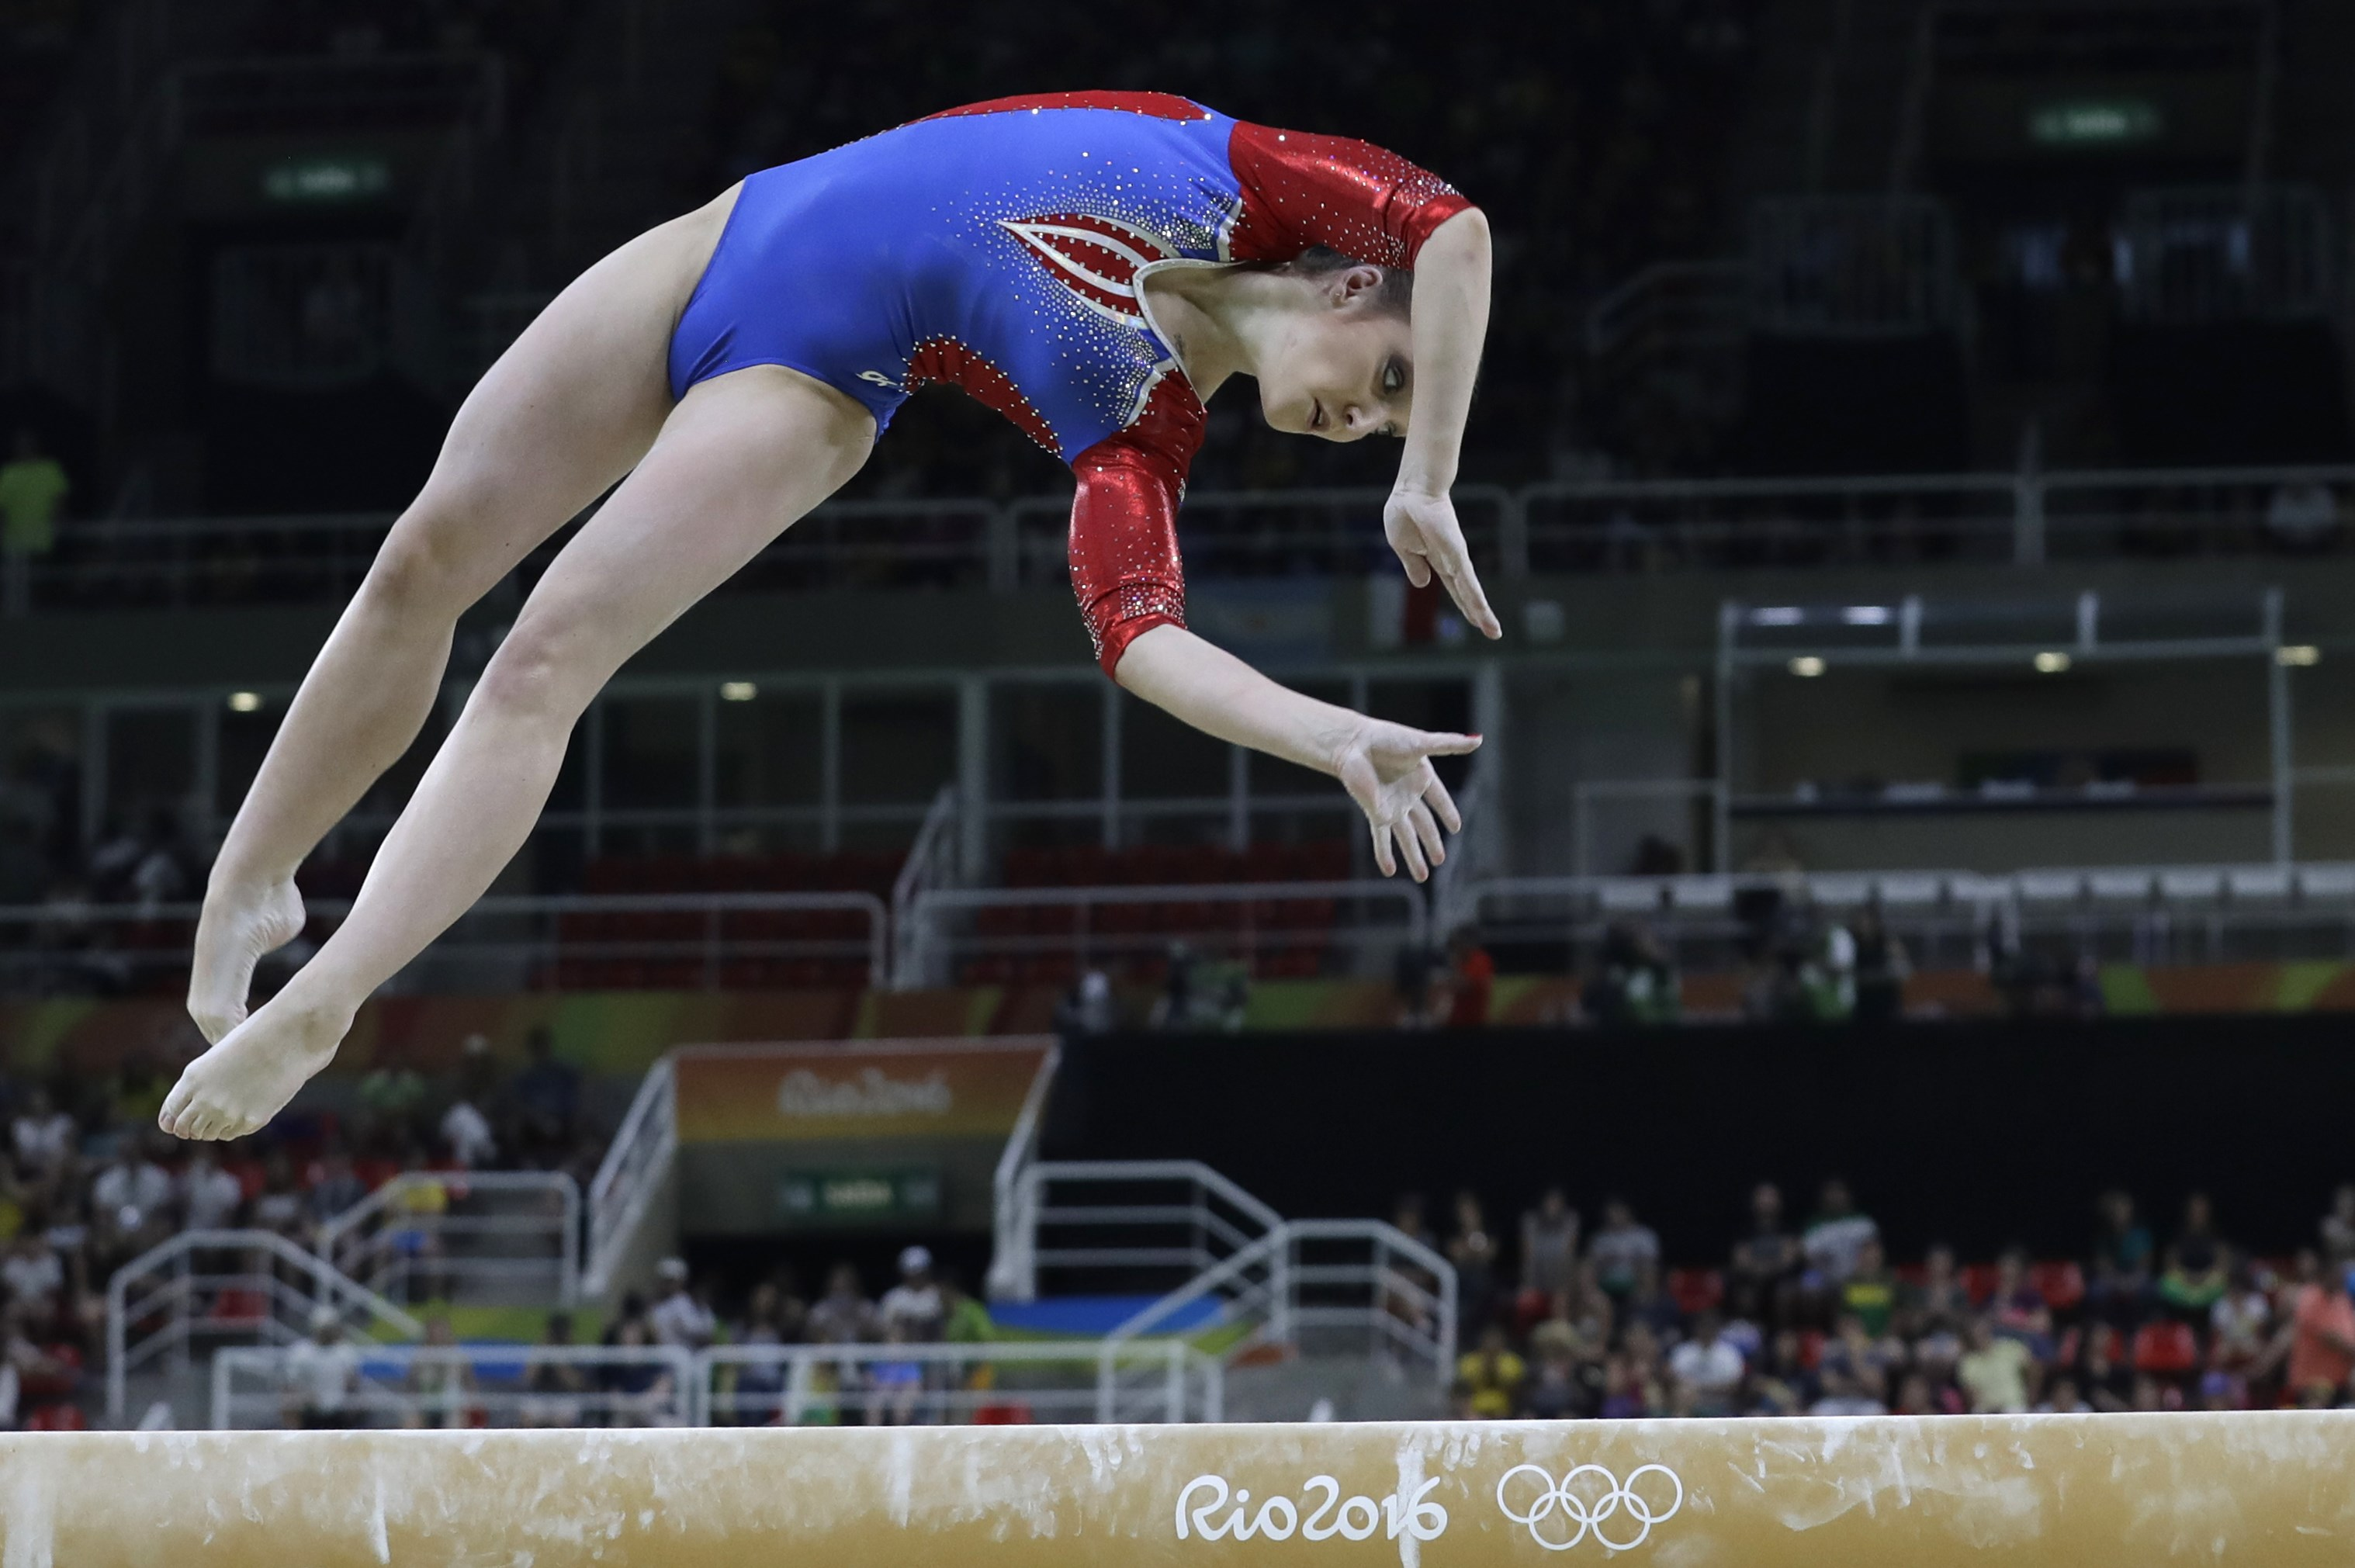 Russia's Aliya Mustafina performs on the balance beam during the artistic gymnastics women's qualification at the 2016 Summer Olympics in Rio de Janeiro, Brazil, Sunday, Aug. 7, 2016. (AP Photo/Rebecca Blackwell)